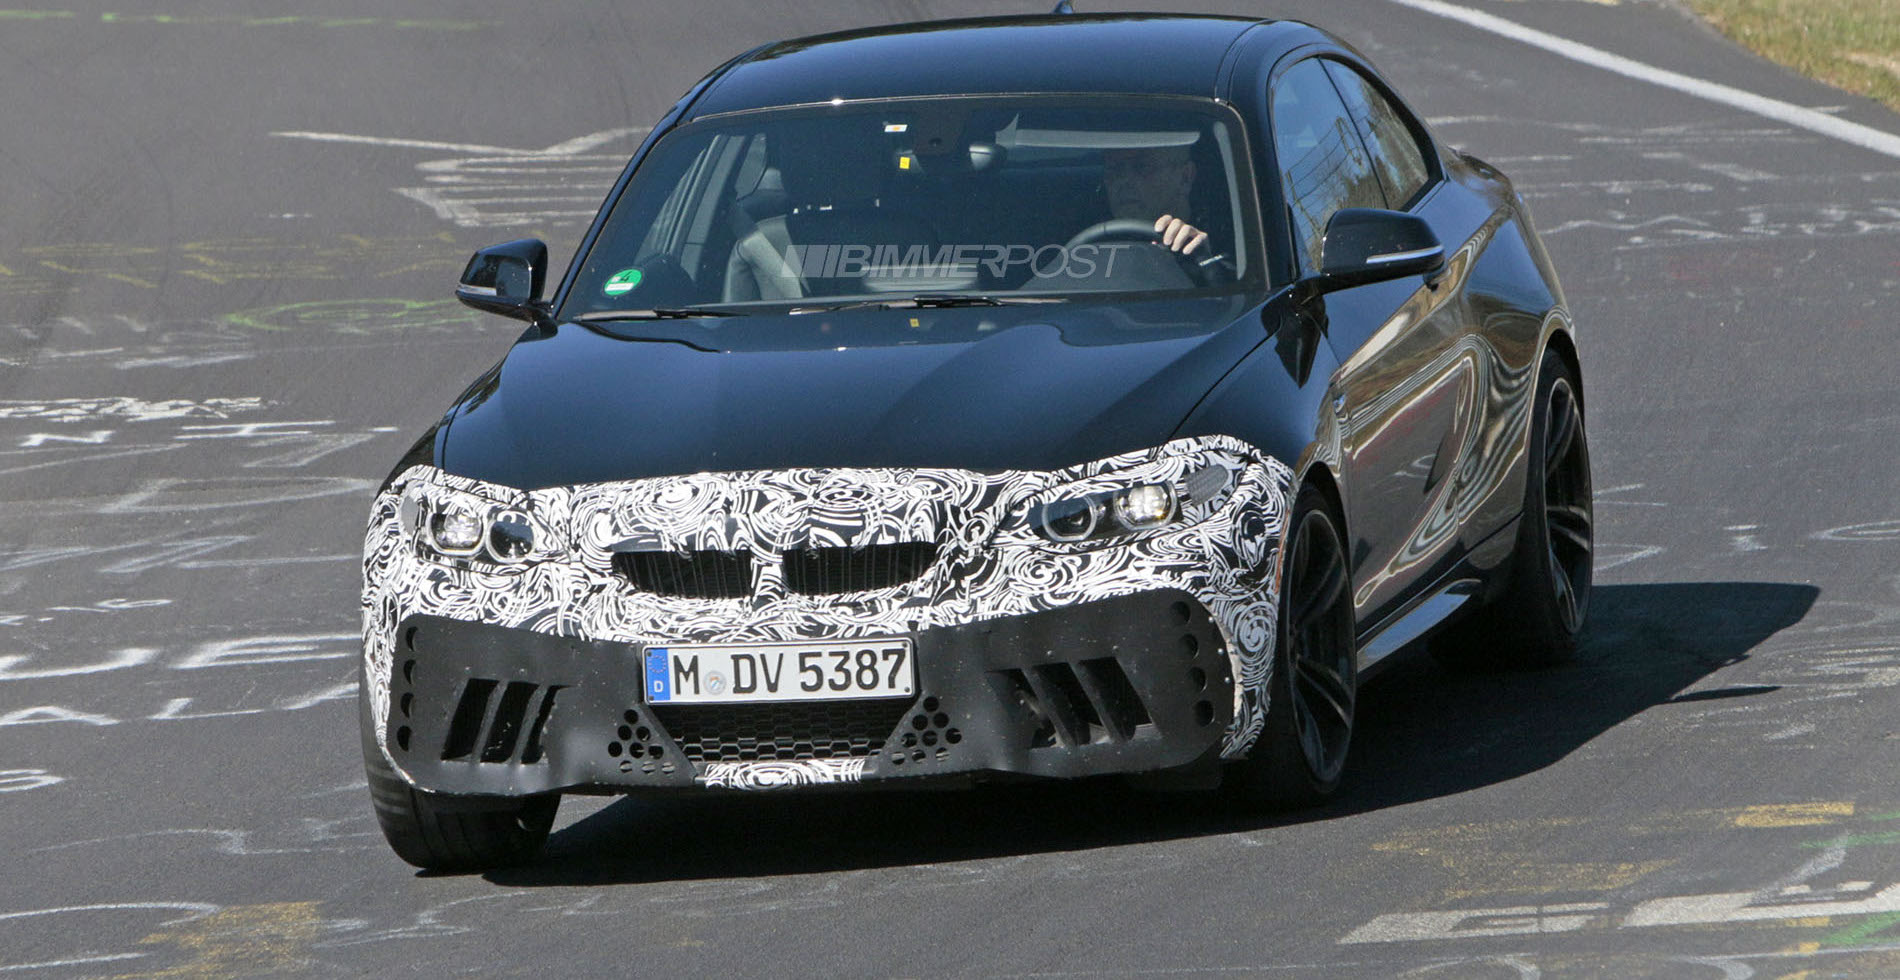 Bmw m2 cs and m2 gts csl production order dates engine specs and more info